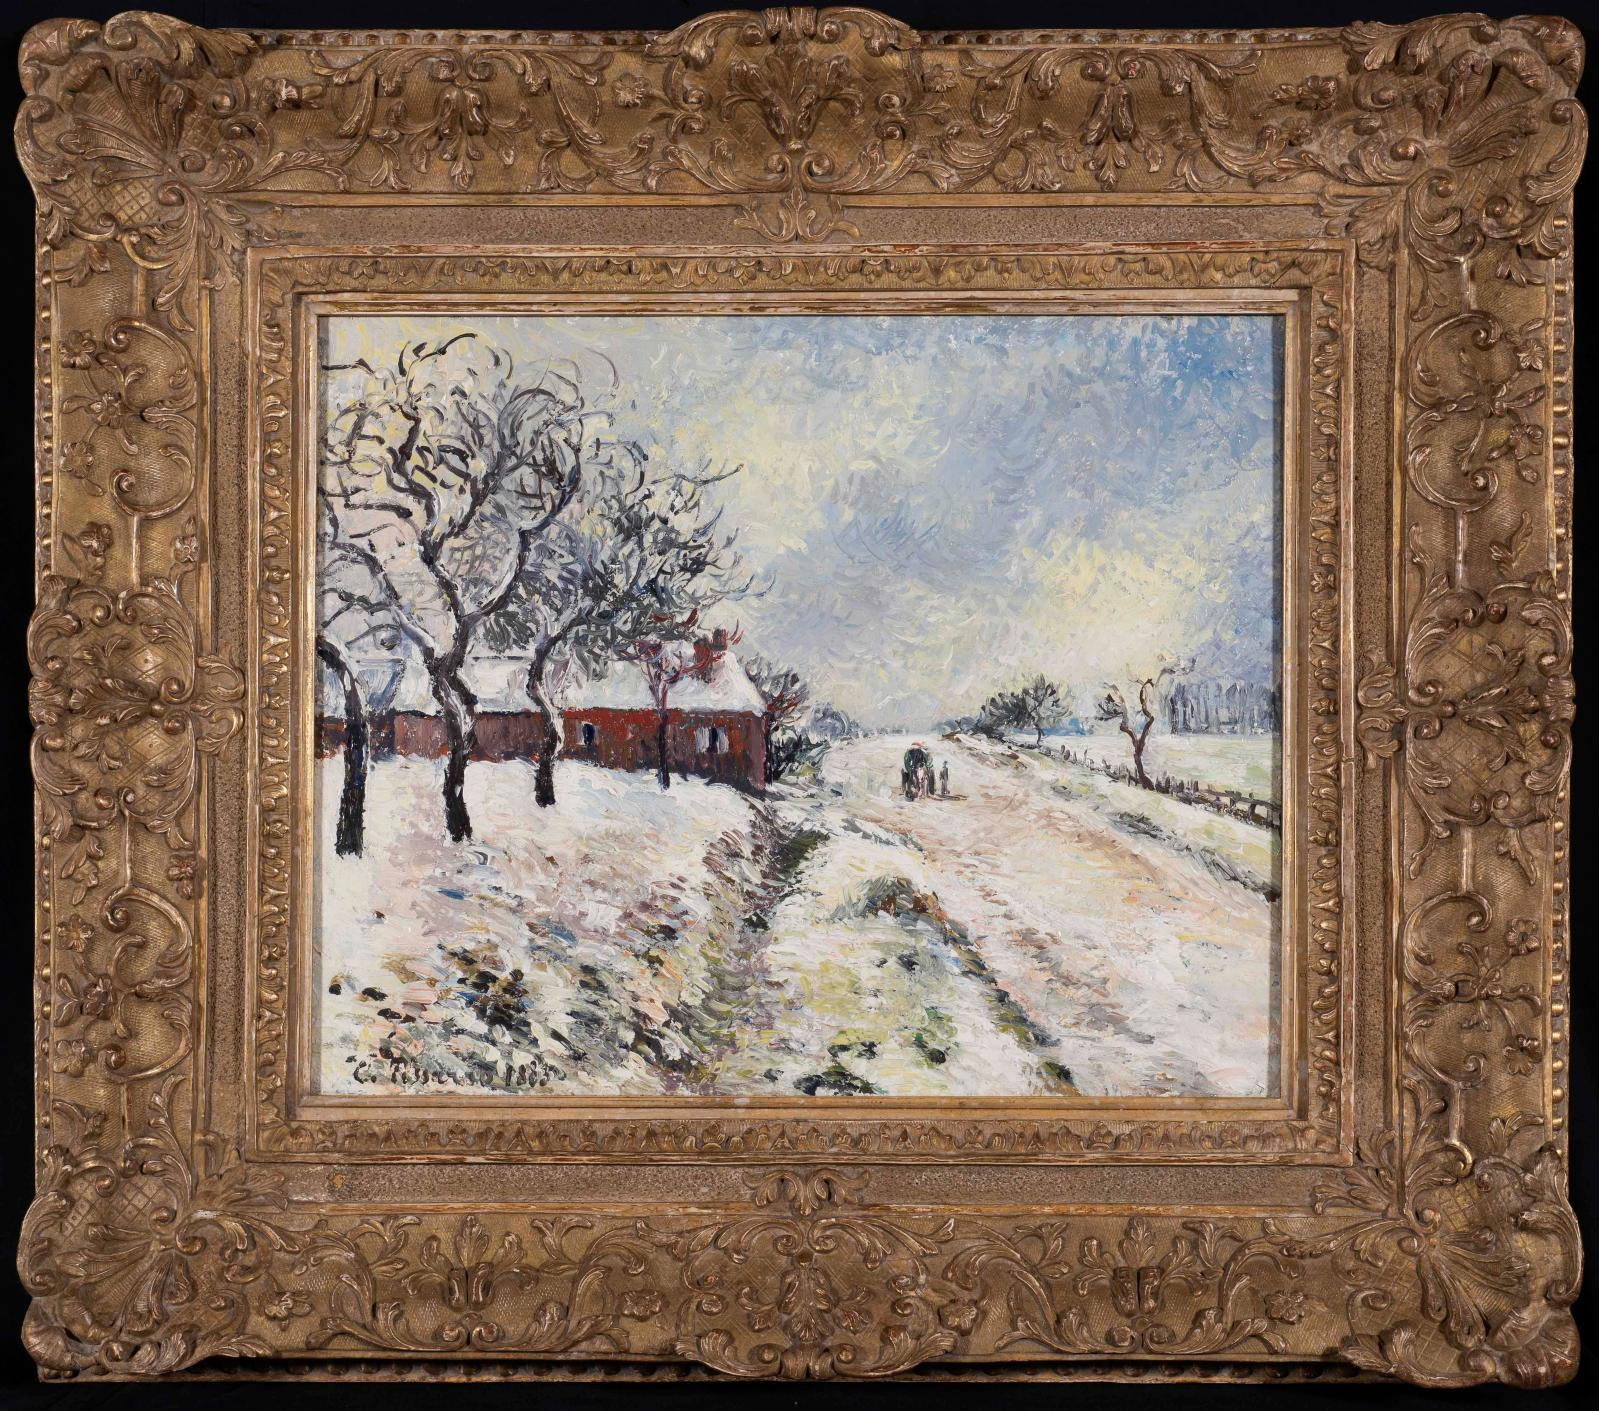 Camille Pissarro (1830-1903), Road and House under Snow, Éragny (1885).COURTESY OF STERN PISSARRO